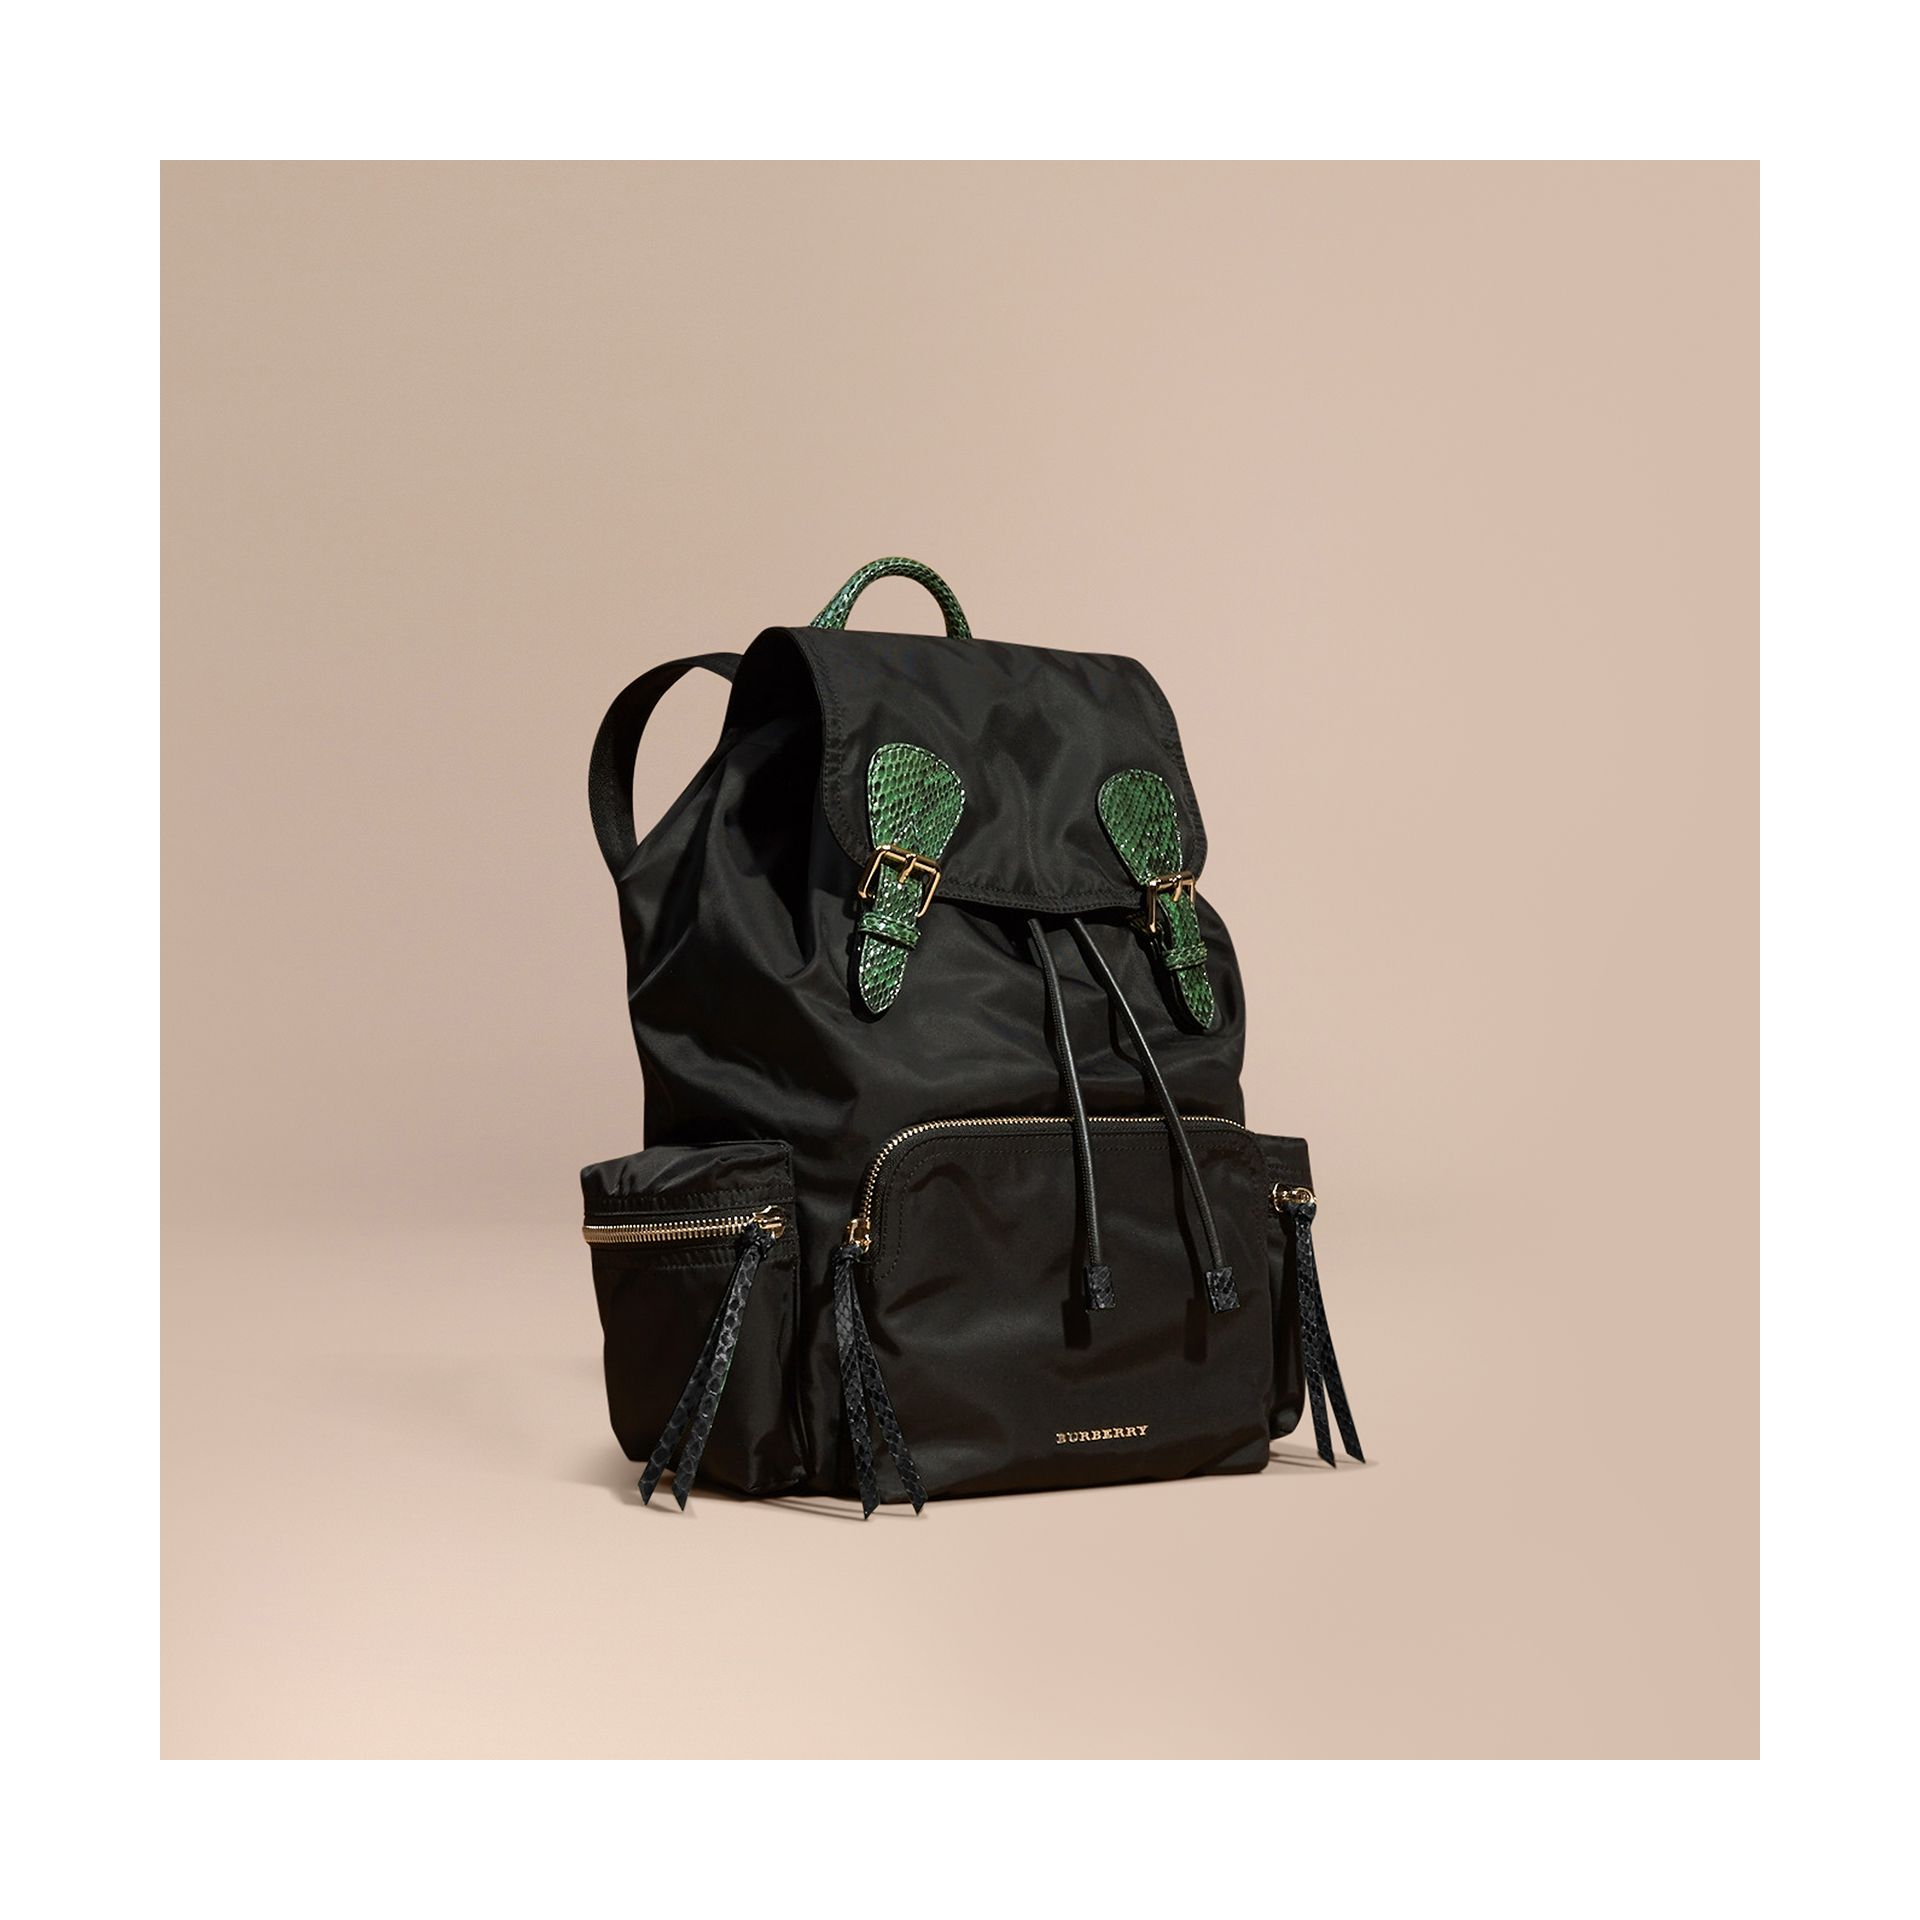 Black/bright green The Large Rucksack in Technical Nylon and Snakeskin Black/bright Green - gallery image 1